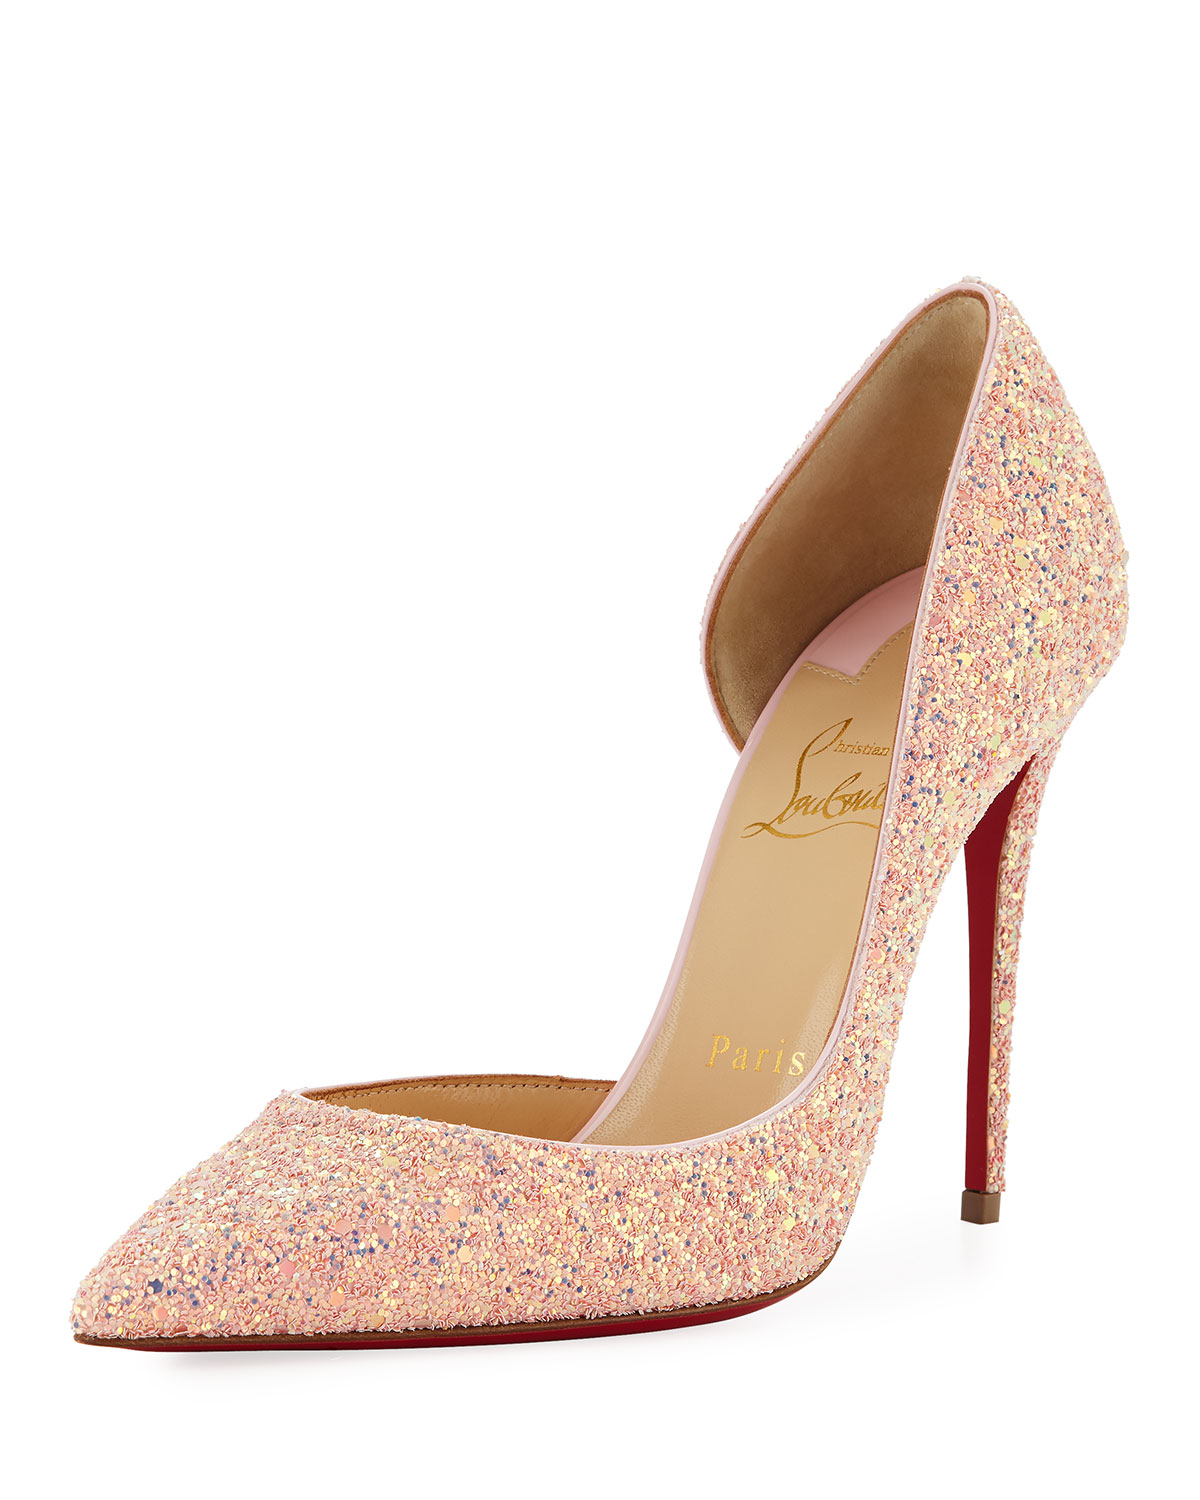 Christian Louboutin Beige Red Pigalles Follies Patent 100mm Sole Pump Color official online store